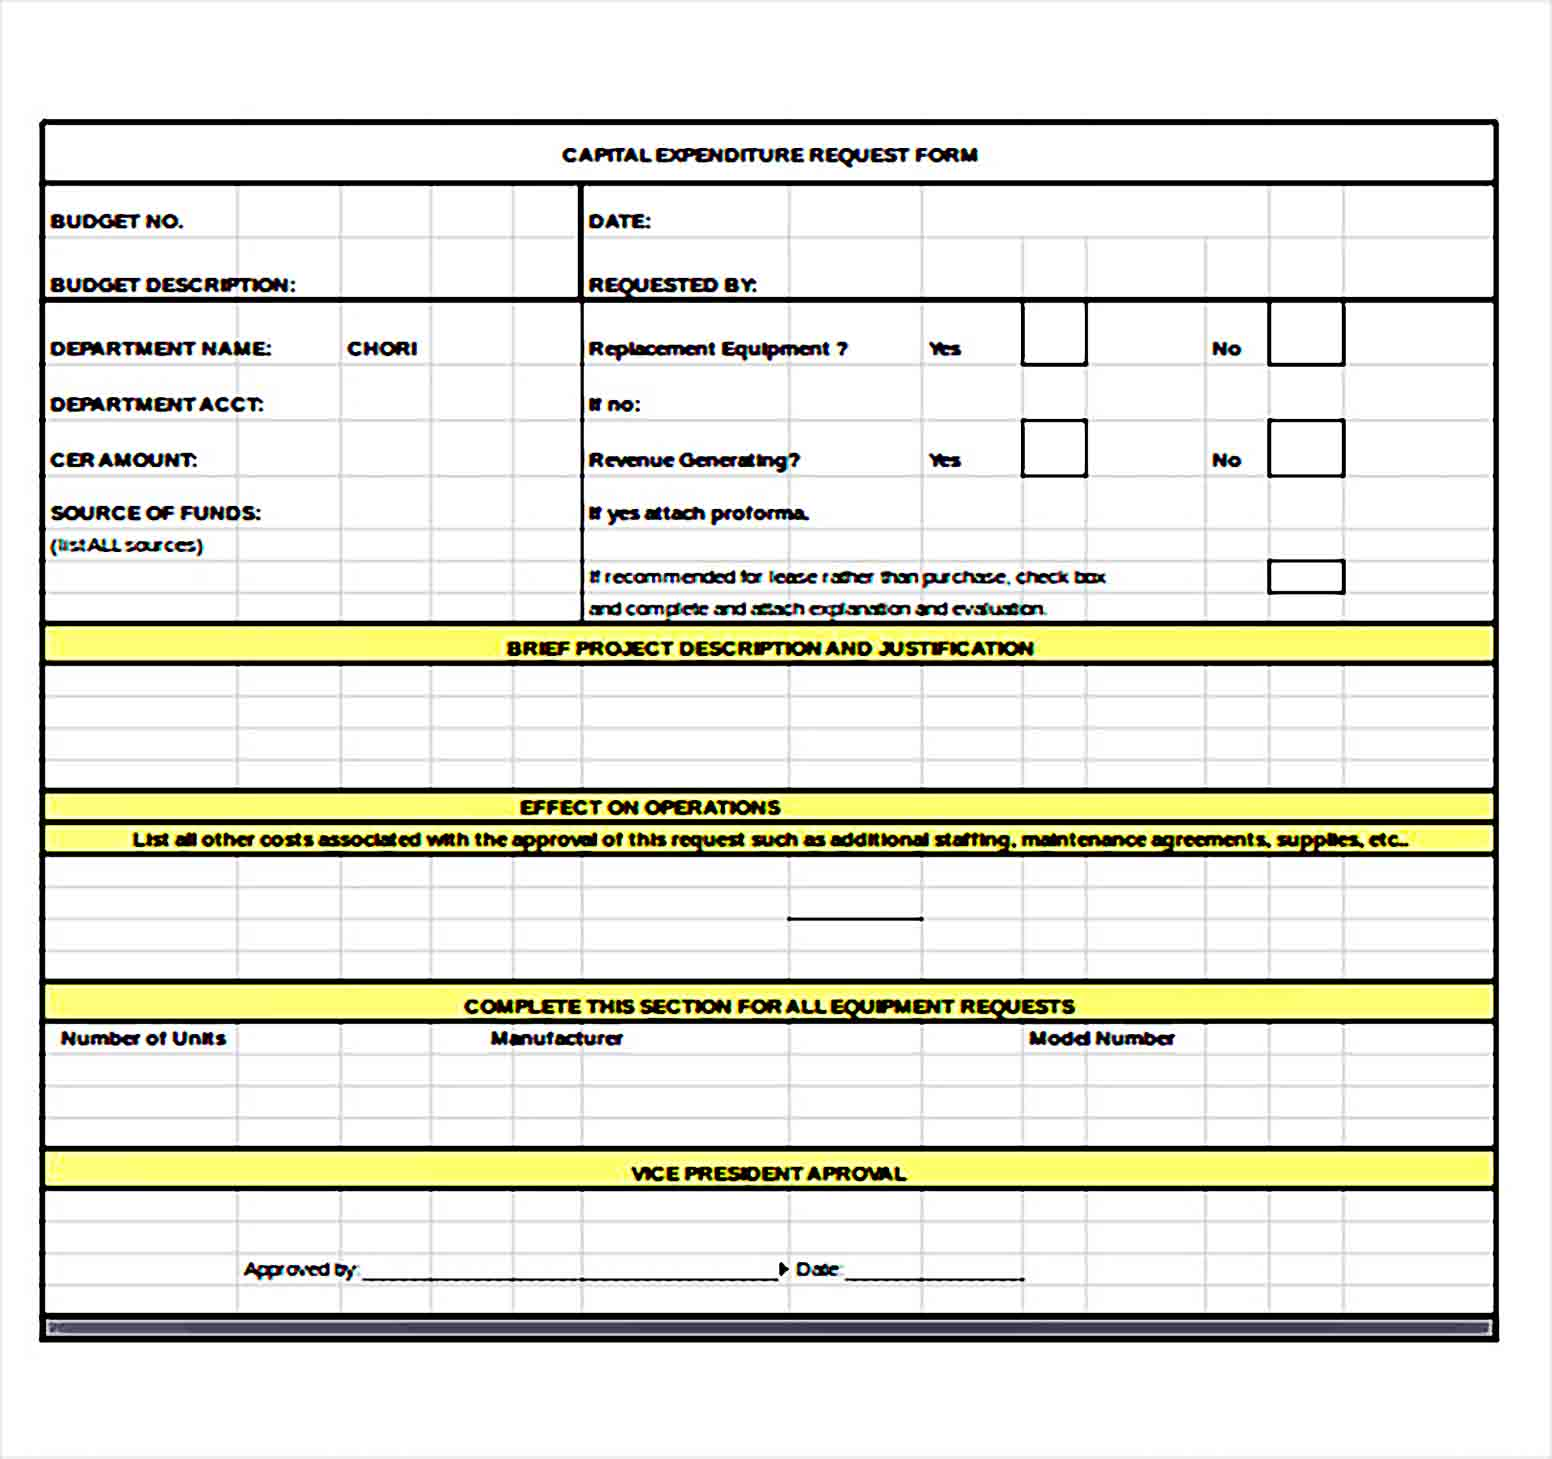 capital expenditure budget request Form Excel 1